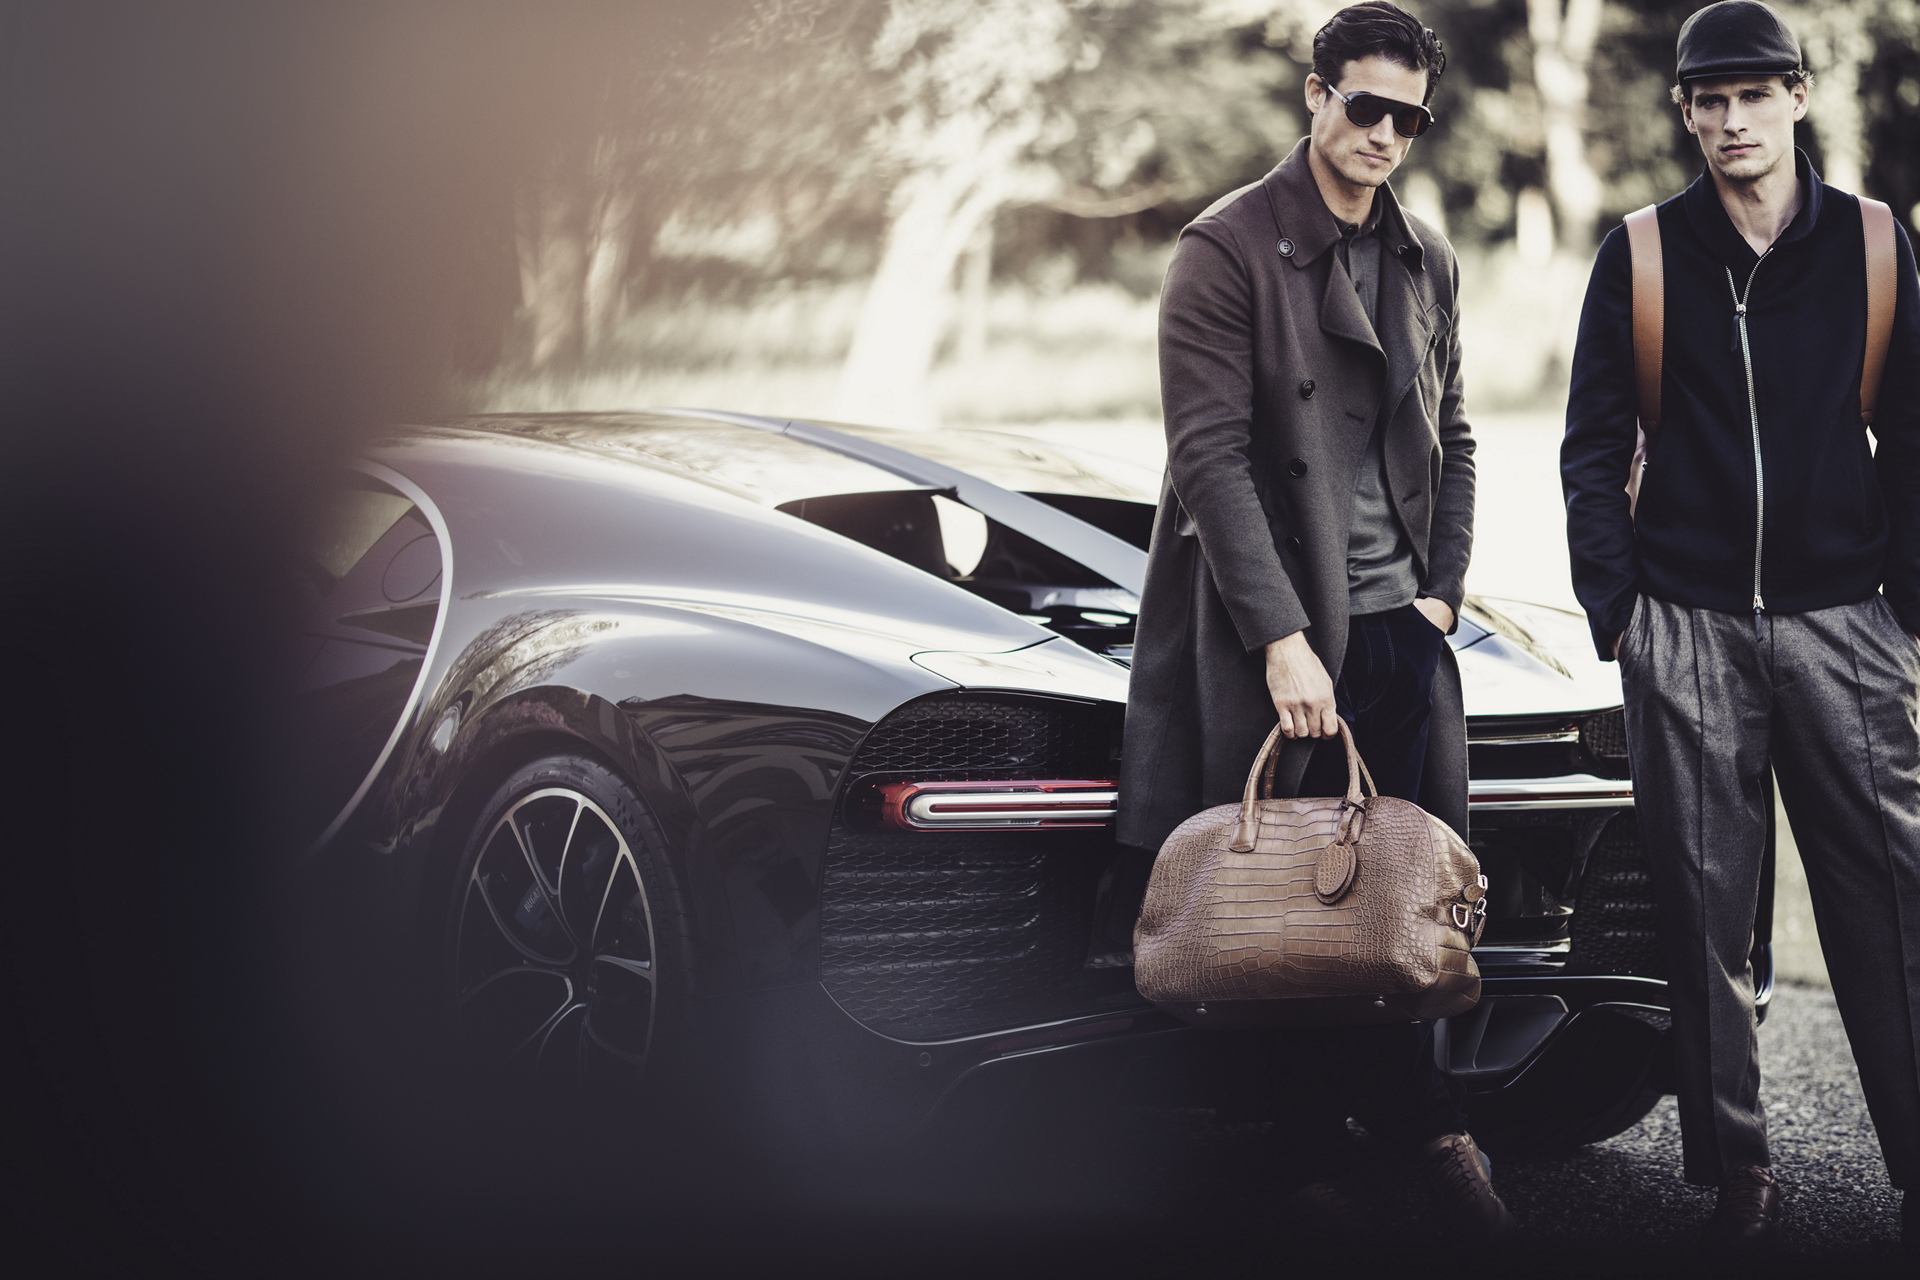 Armani Collaborates with Bugatti on a Limited Edition Line of Products © Volkswagen AG